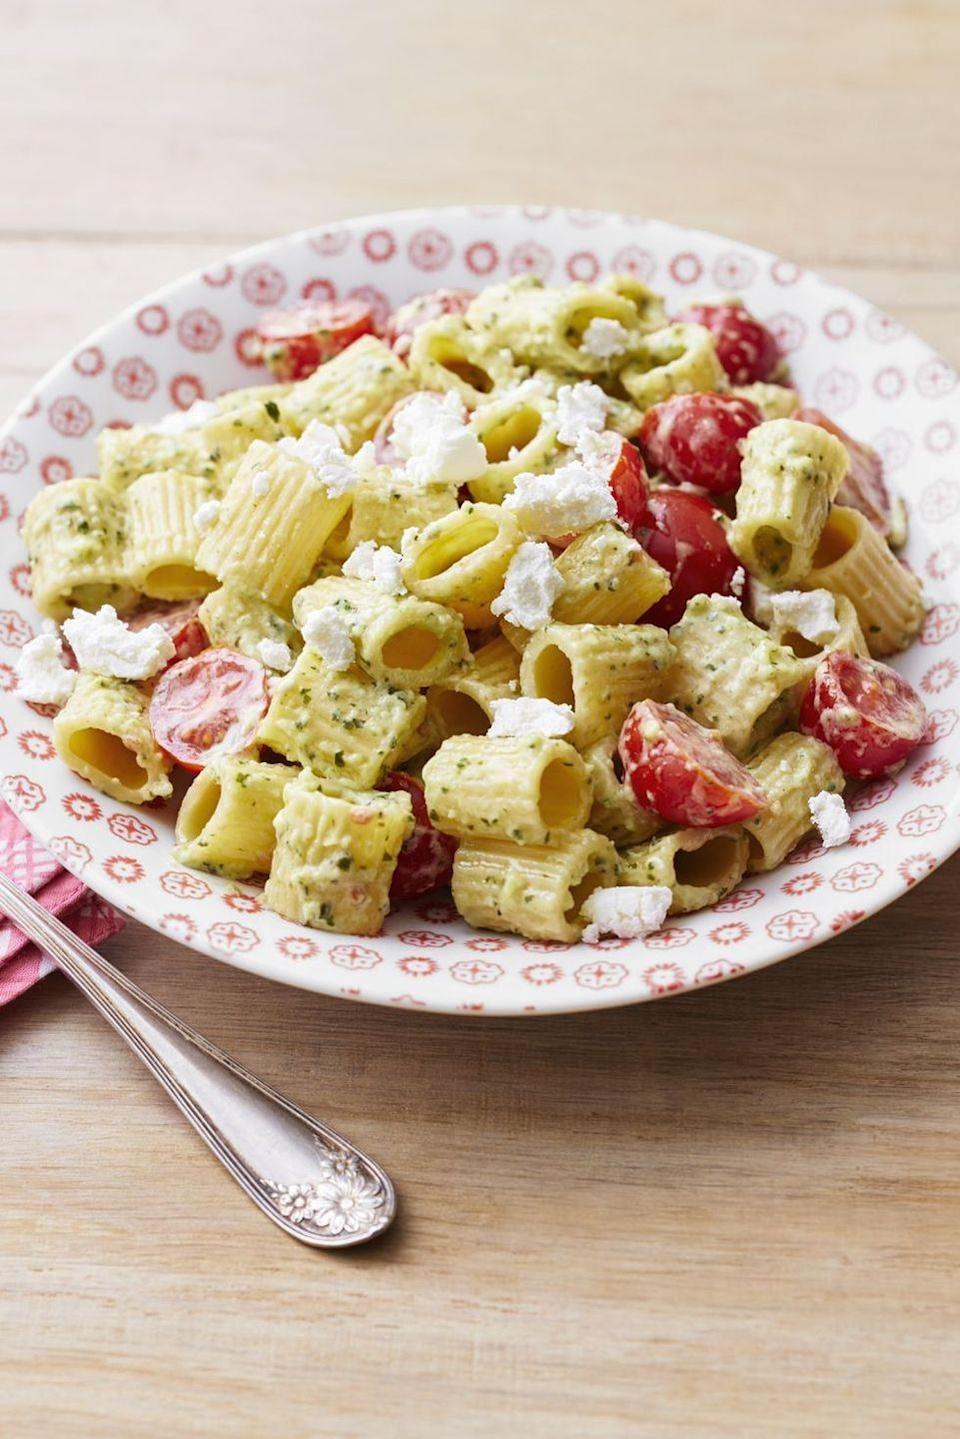 """<p>Make your own pesto cream sauce and toss it with rigatoni, cherry tomatoes, and goat cheese crumbles.</p><p><a href=""""https://www.thepioneerwoman.com/food-cooking/recipes/a32378514/rigatoni-with-pesto-cream-sauce-recipe/"""" rel=""""nofollow noopener"""" target=""""_blank"""" data-ylk=""""slk:Get the recipe."""" class=""""link rapid-noclick-resp""""><strong>Get the recipe.</strong></a></p>"""